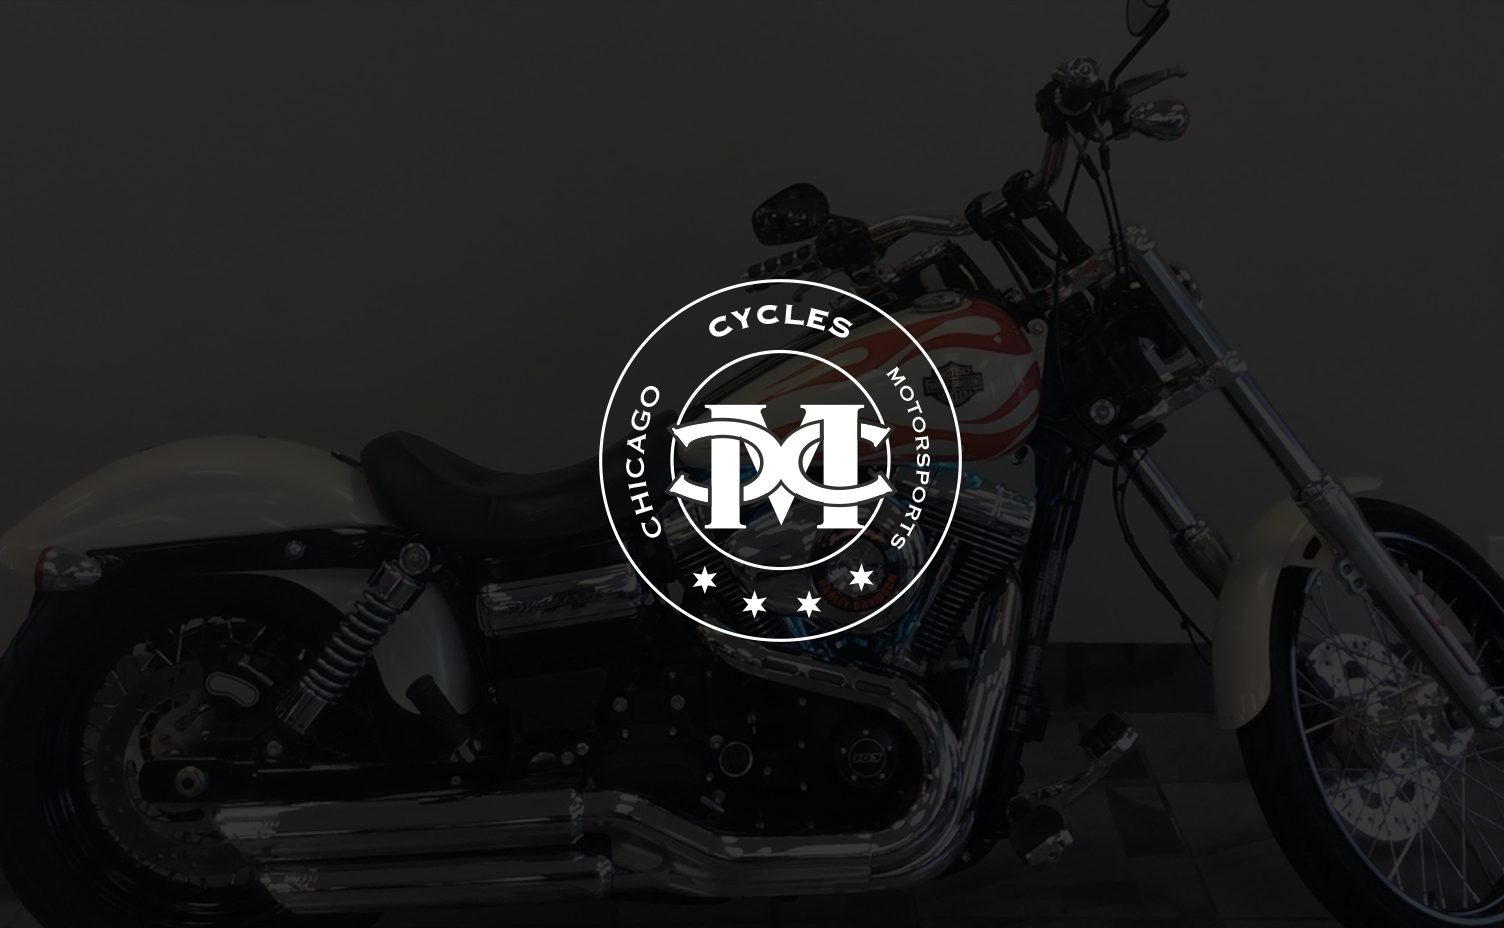 CHICAGO CYCLES & MOTORSPORTS